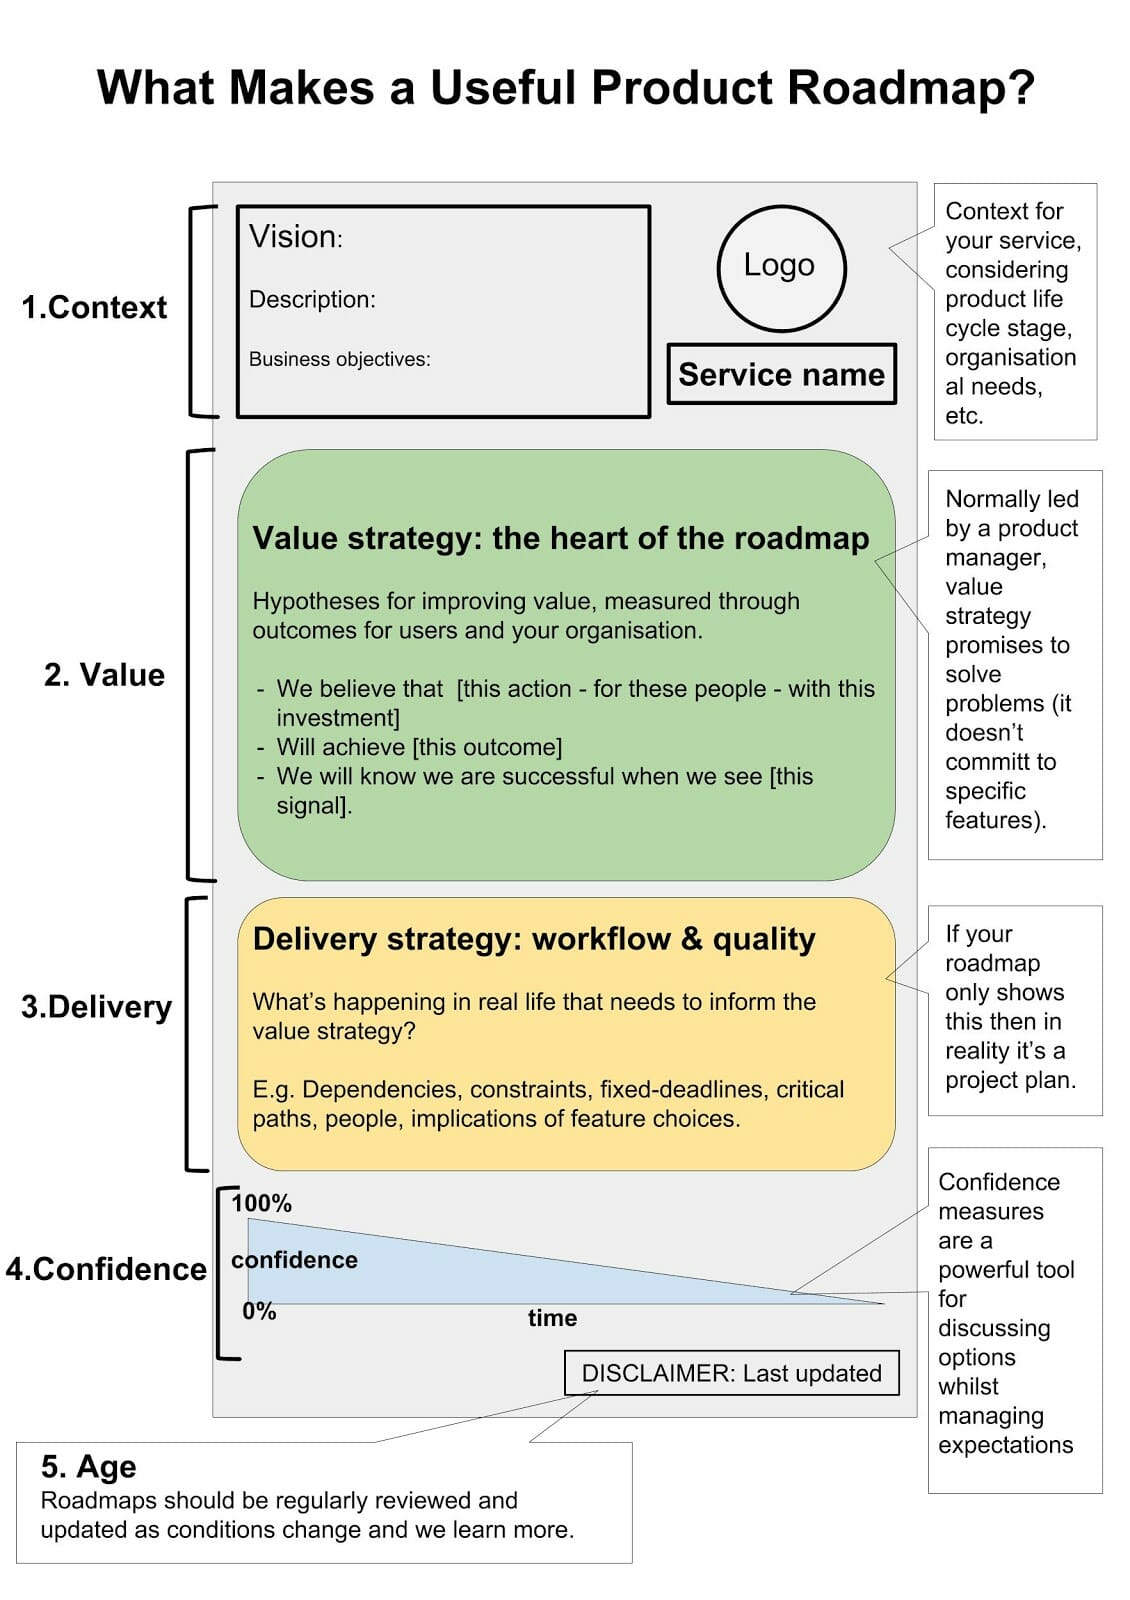 A diagram for a roadmap that includes Context, Value, Delivery, and Confidence